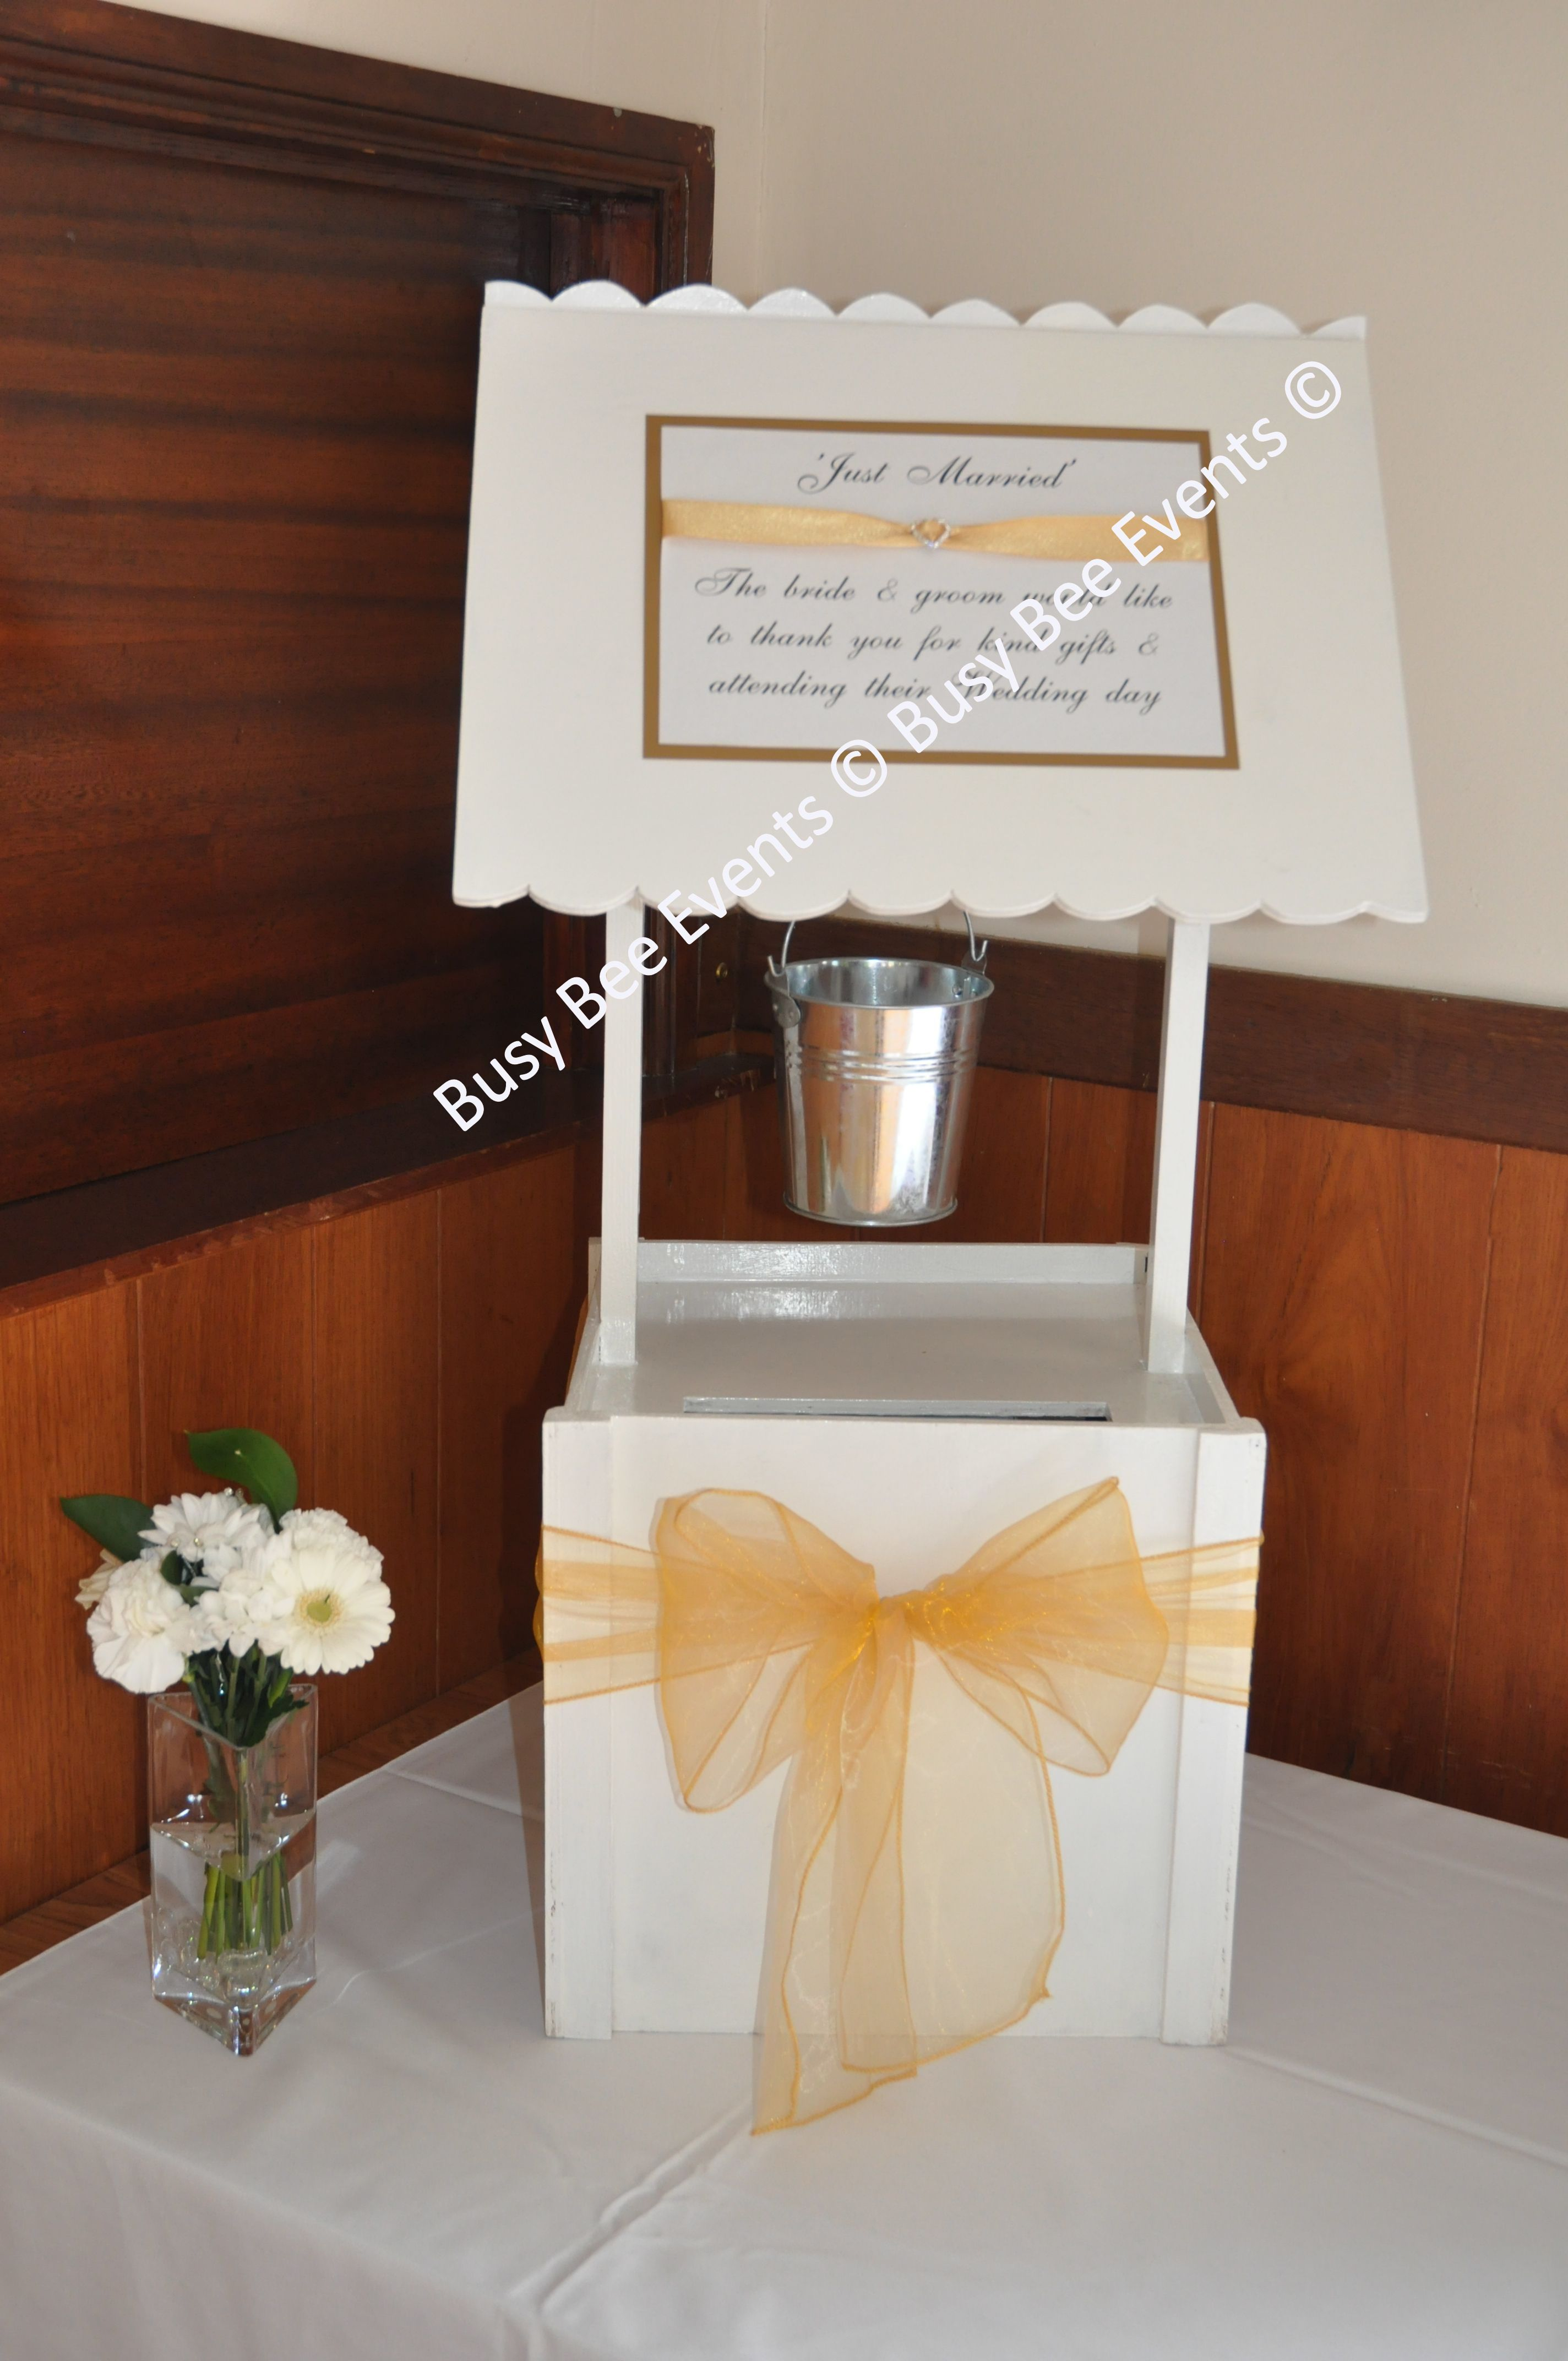 Wishing Well For Cards Lockable And Available In White With Silver Bucket Ivory Gold